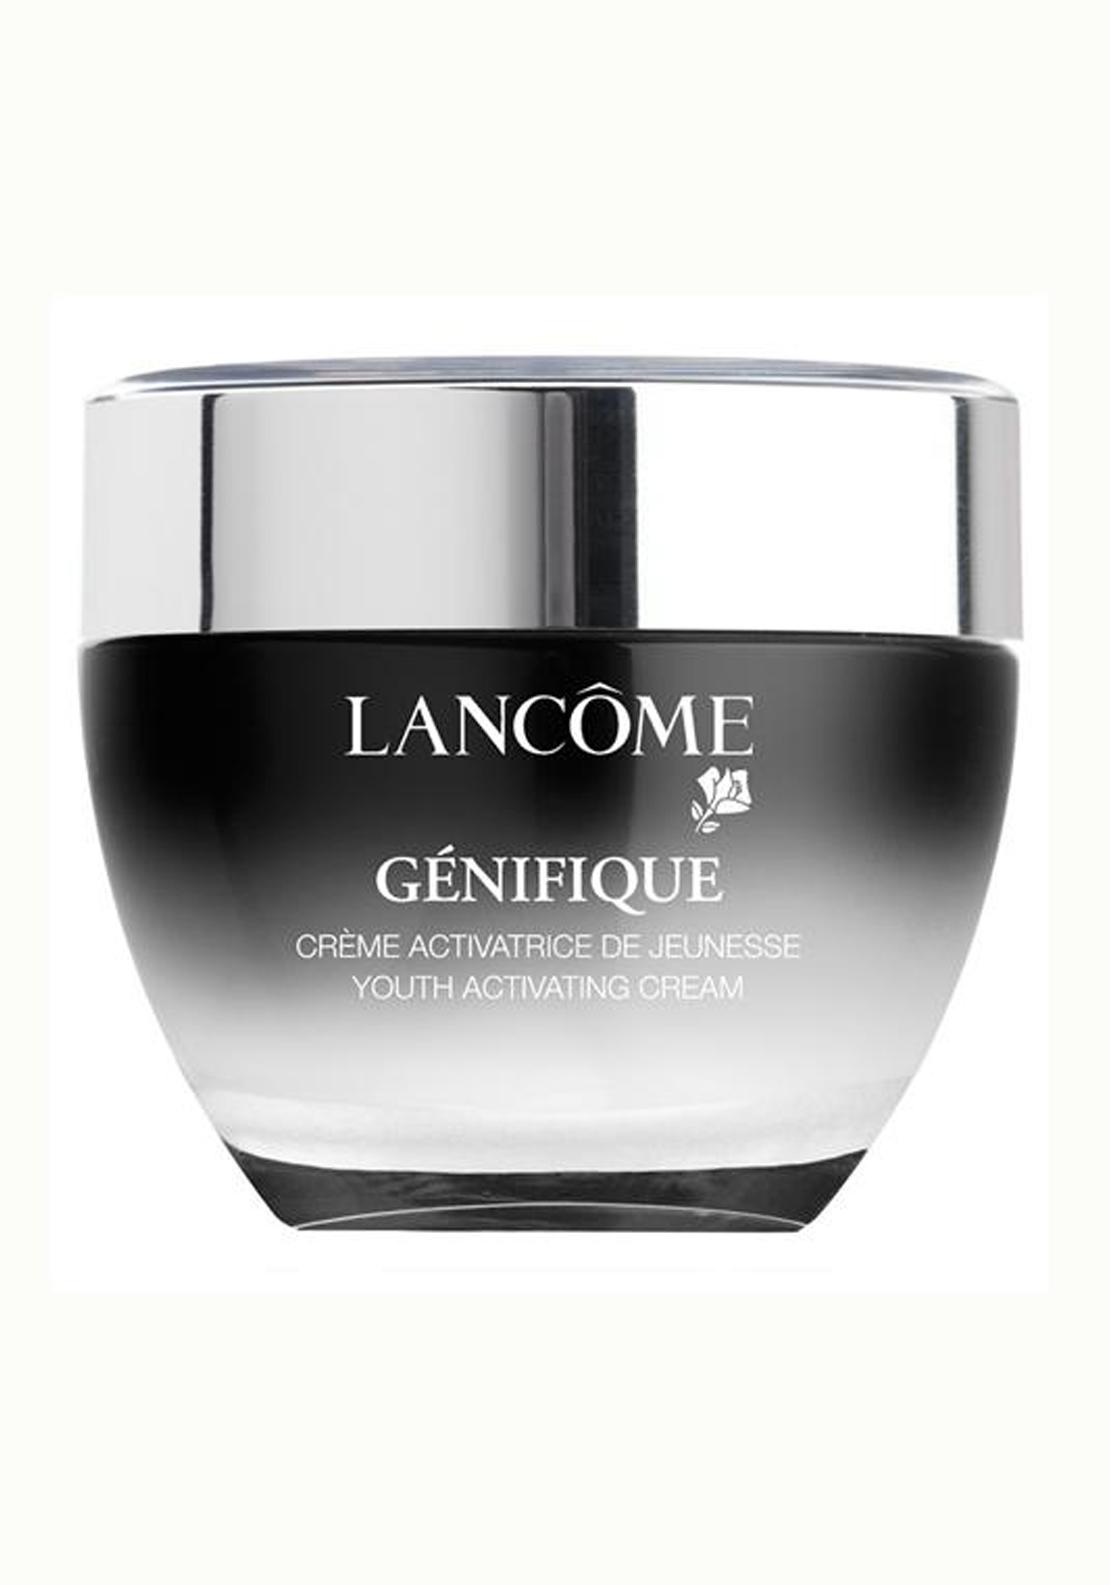 Lancome Genifique Youth Activating Cream 50ml Lancome